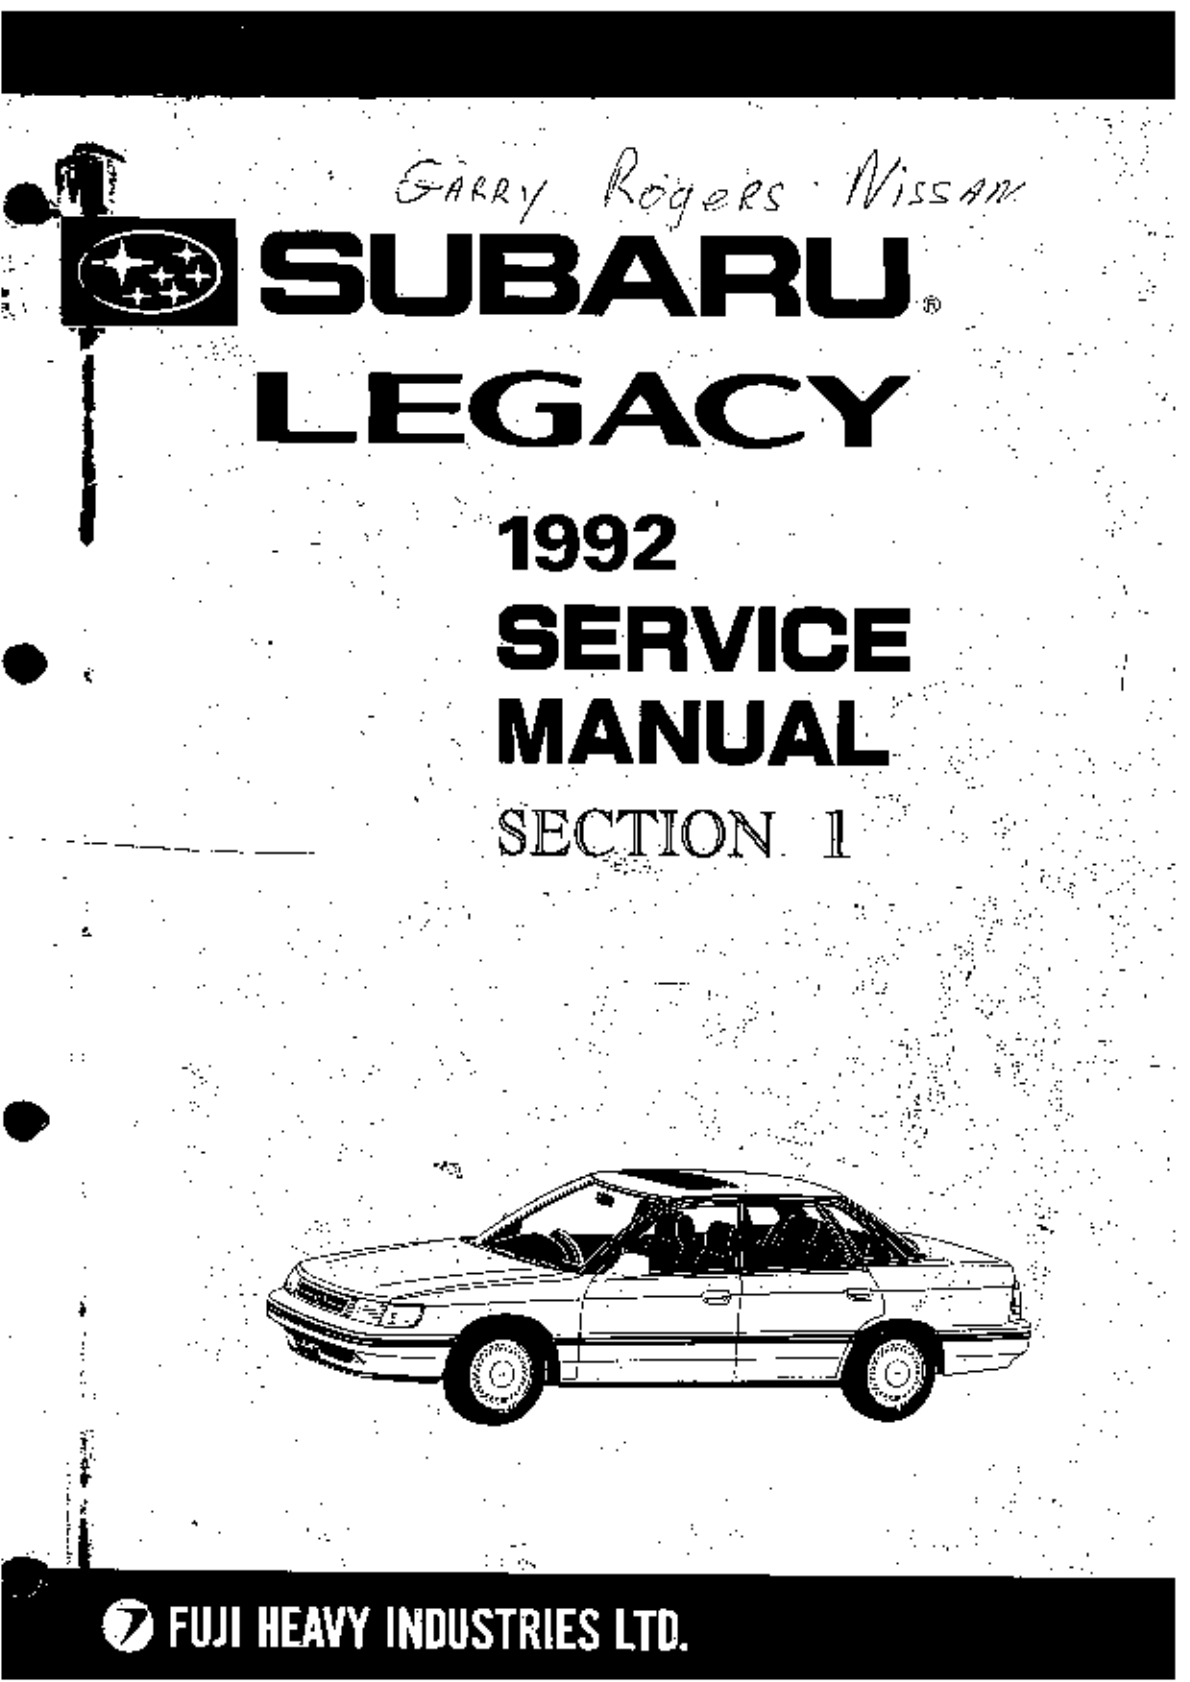 Subaru Legacy 1992 Workshop Manual PDF